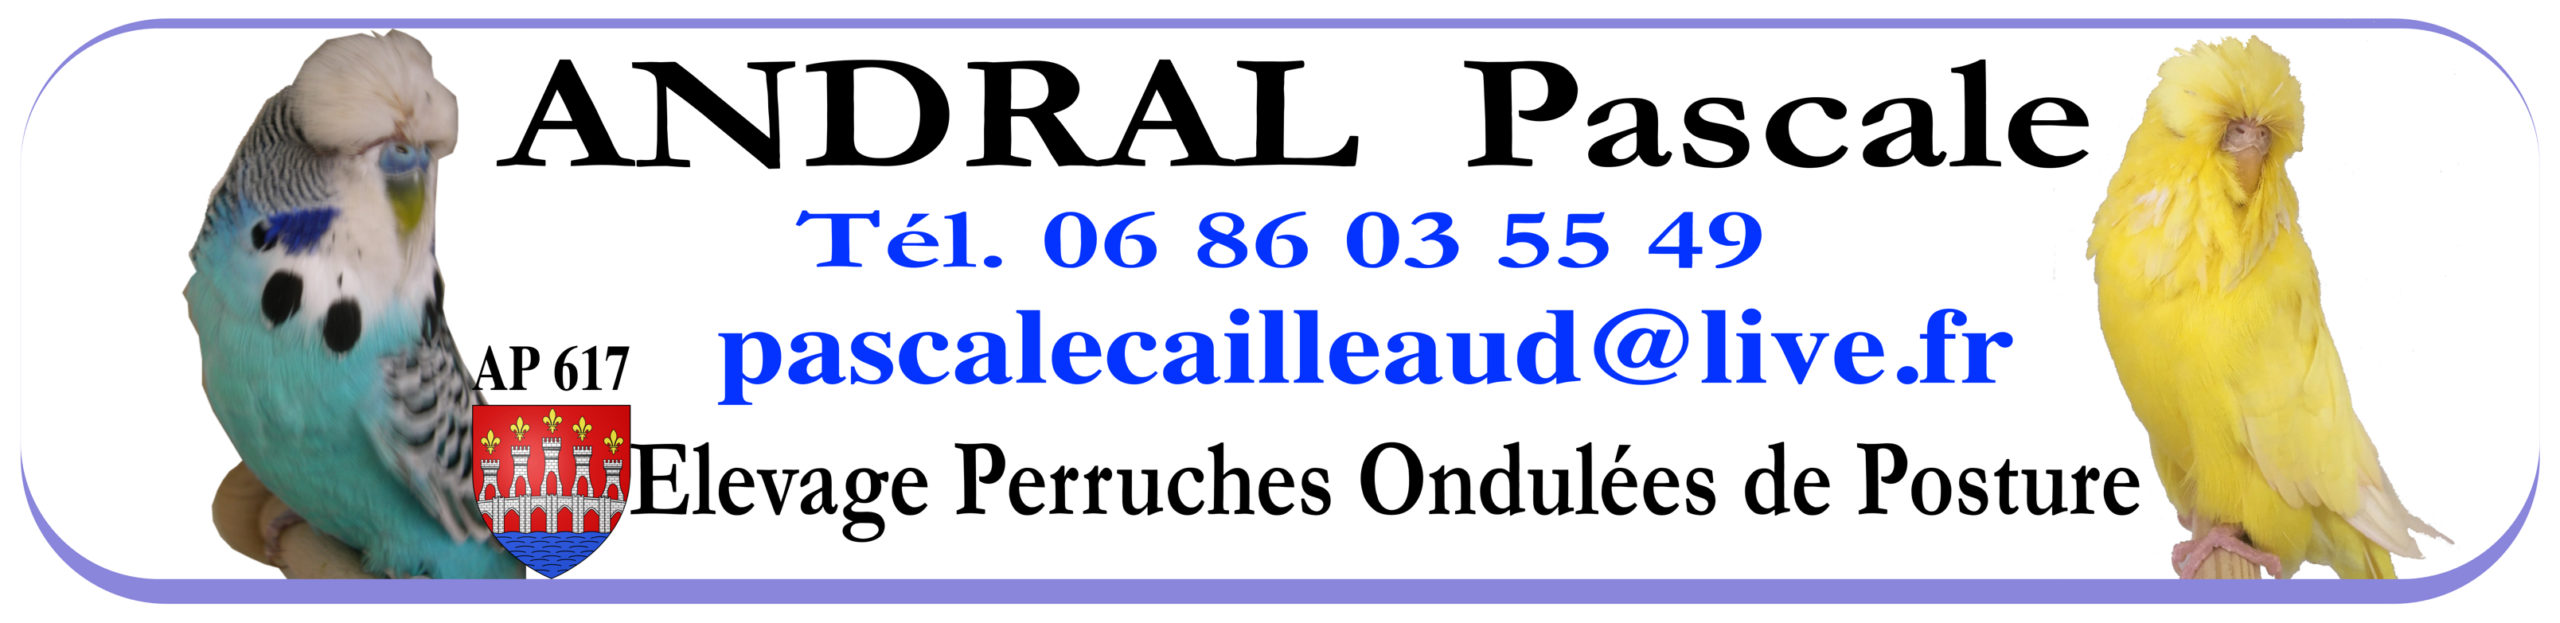 ANDRAL Pascale